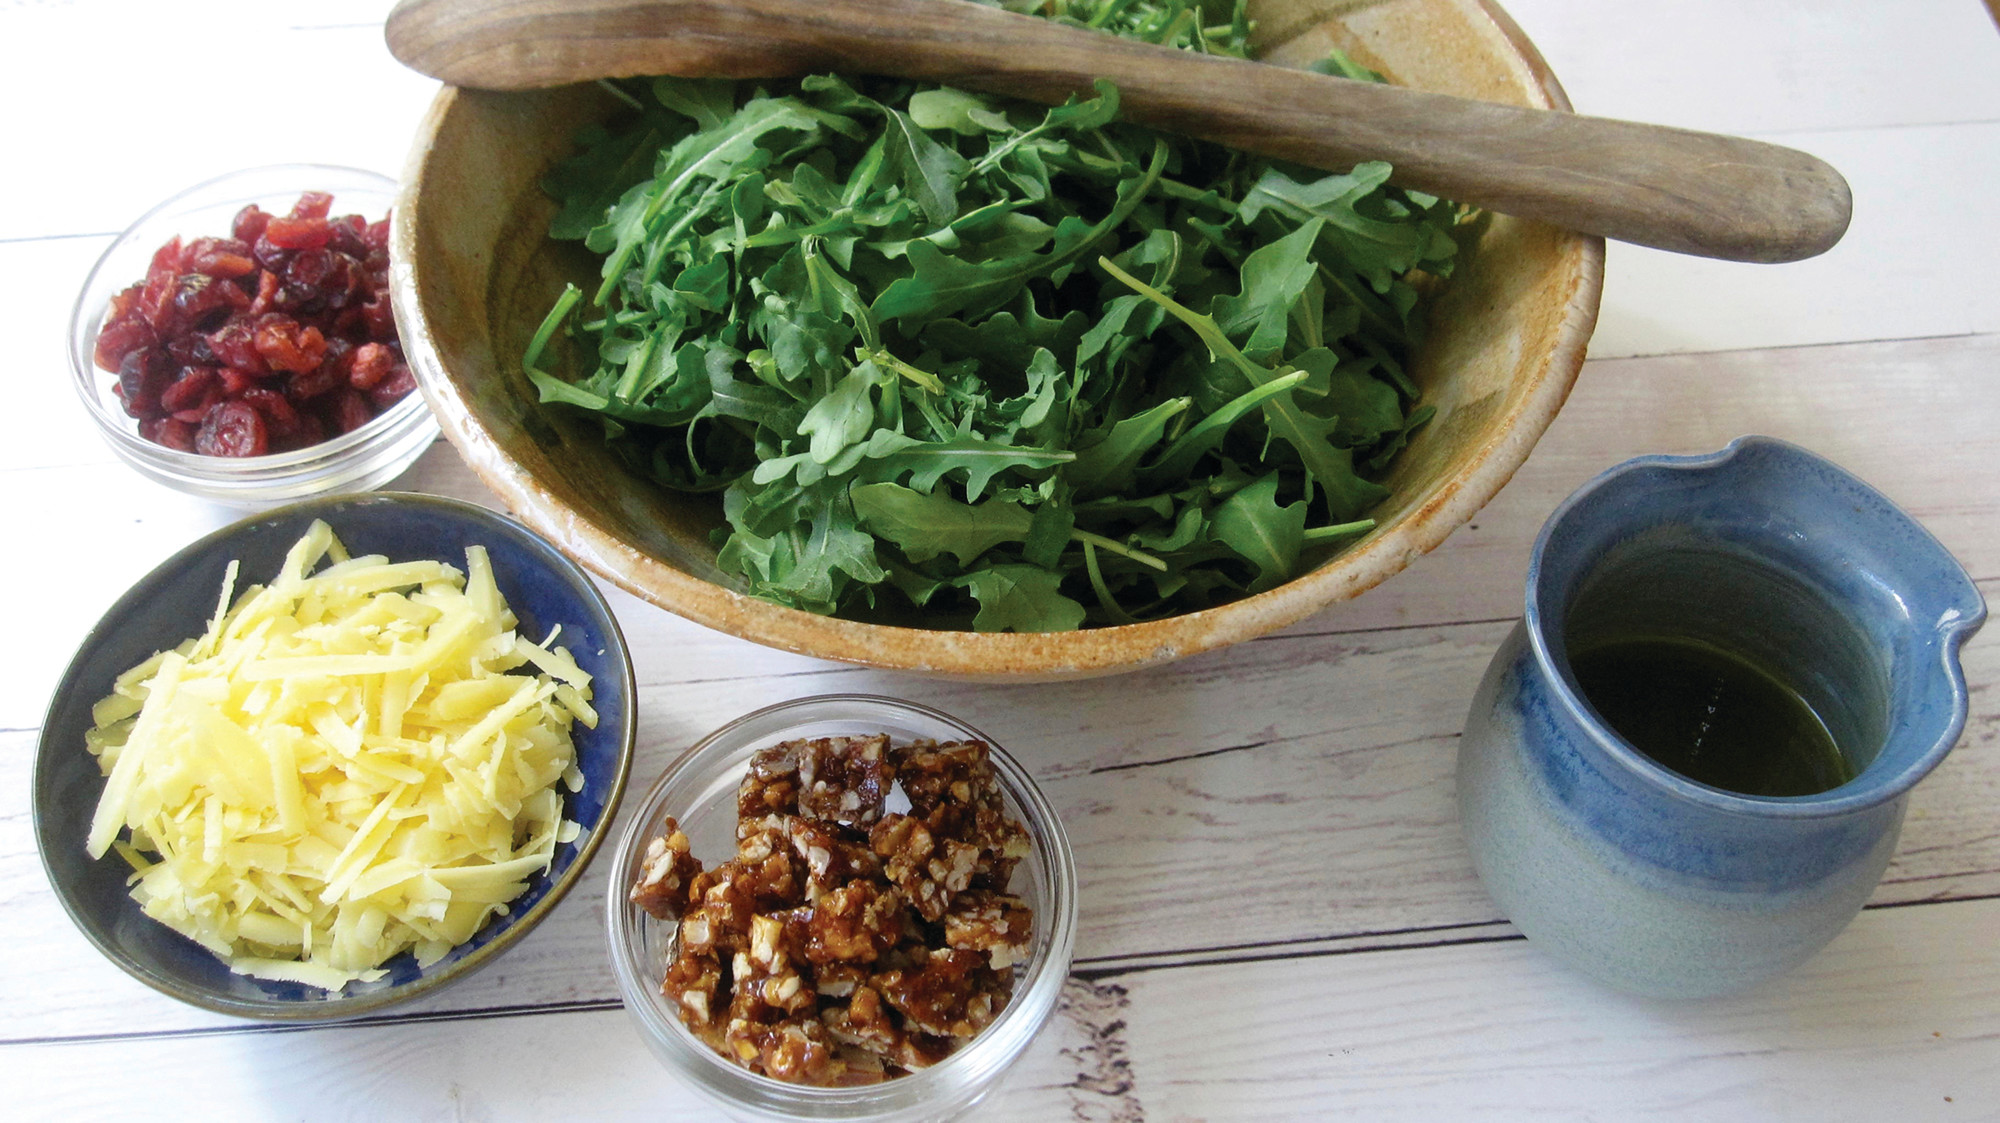 The components of this arugula salad include spicy pecan praline, dried cranberries and aged gouda. Each of the ingredients brings its own unique taste and texture to the mix, but the standout is the praline.